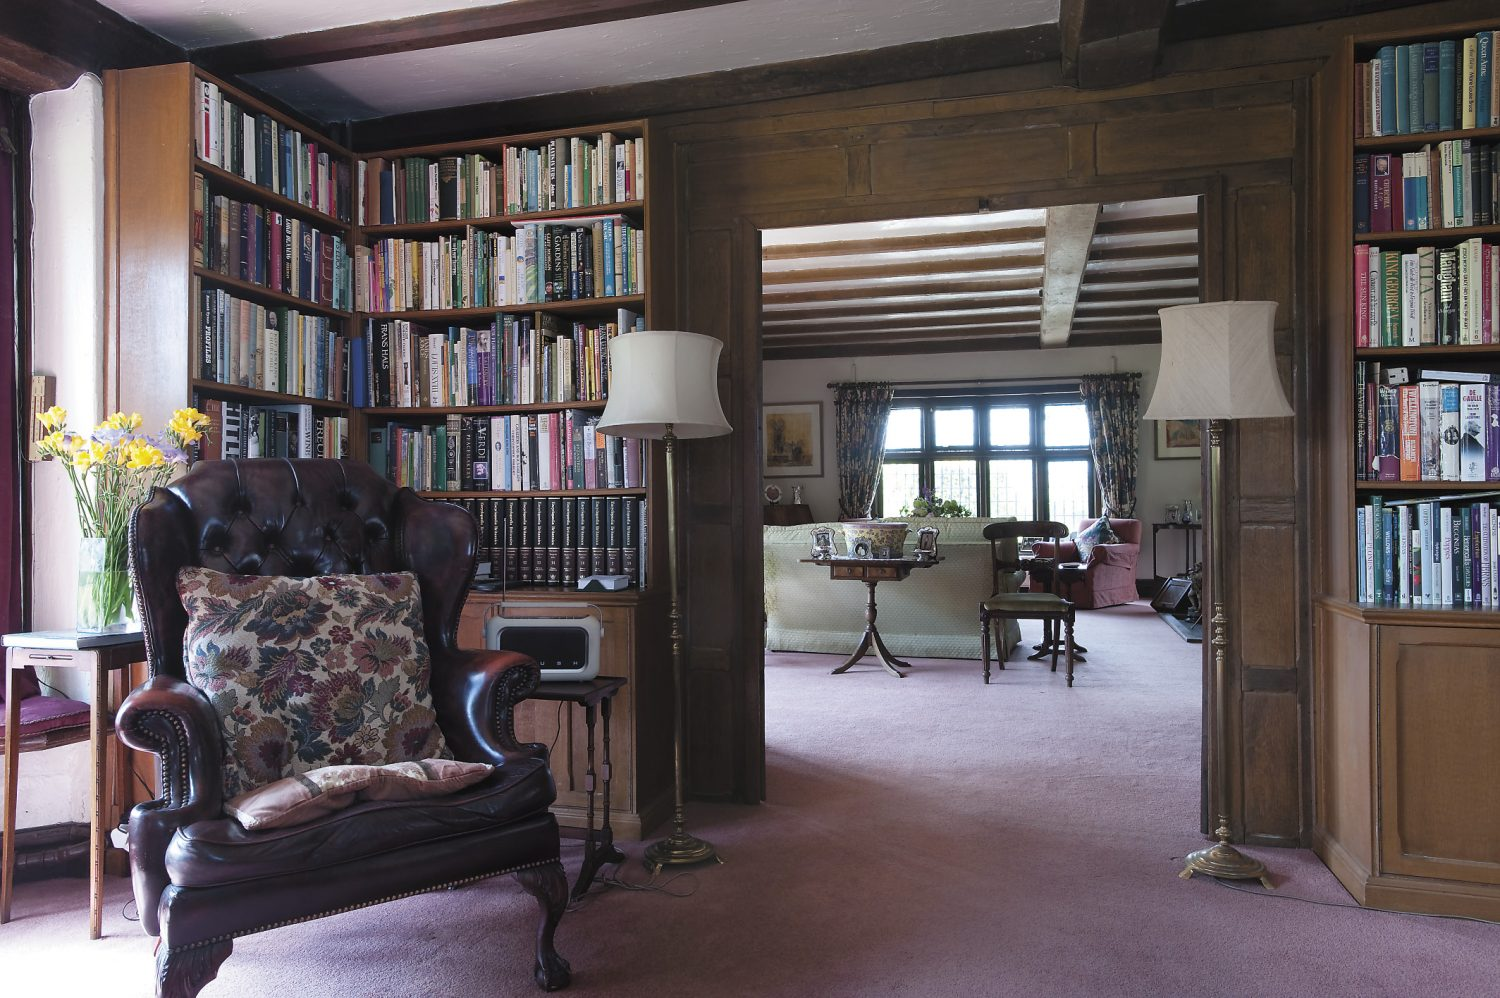 the view into the drawing room from the library